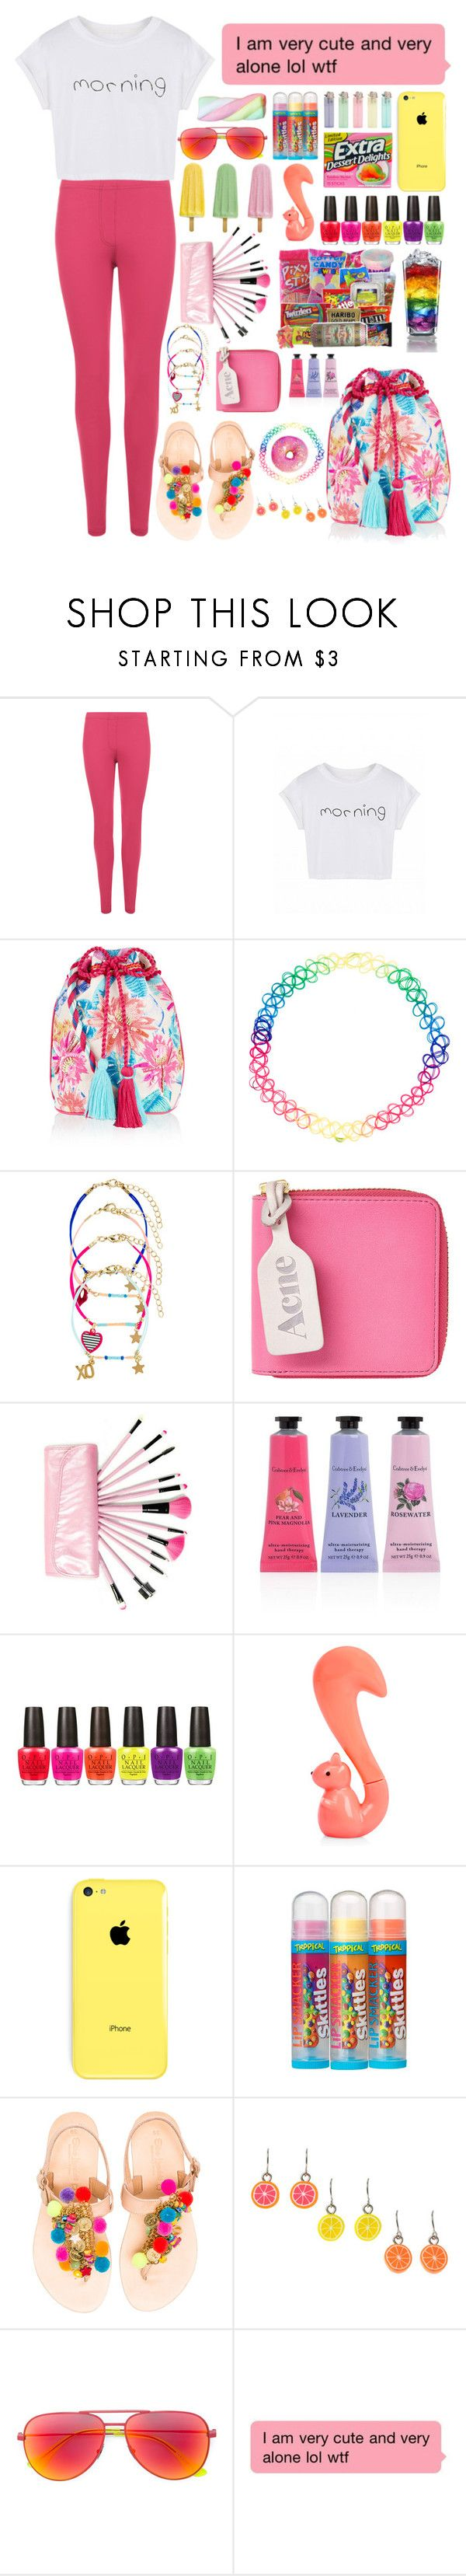 """""""Untitled #89"""" by fulla20o0 ❤ liked on Polyvore featuring WearAll, Accessorize, Acne Studios, Crabtree & Evelyn, OPI, Bonne Bell, Elina Linardaki and Yves Saint Laurent"""